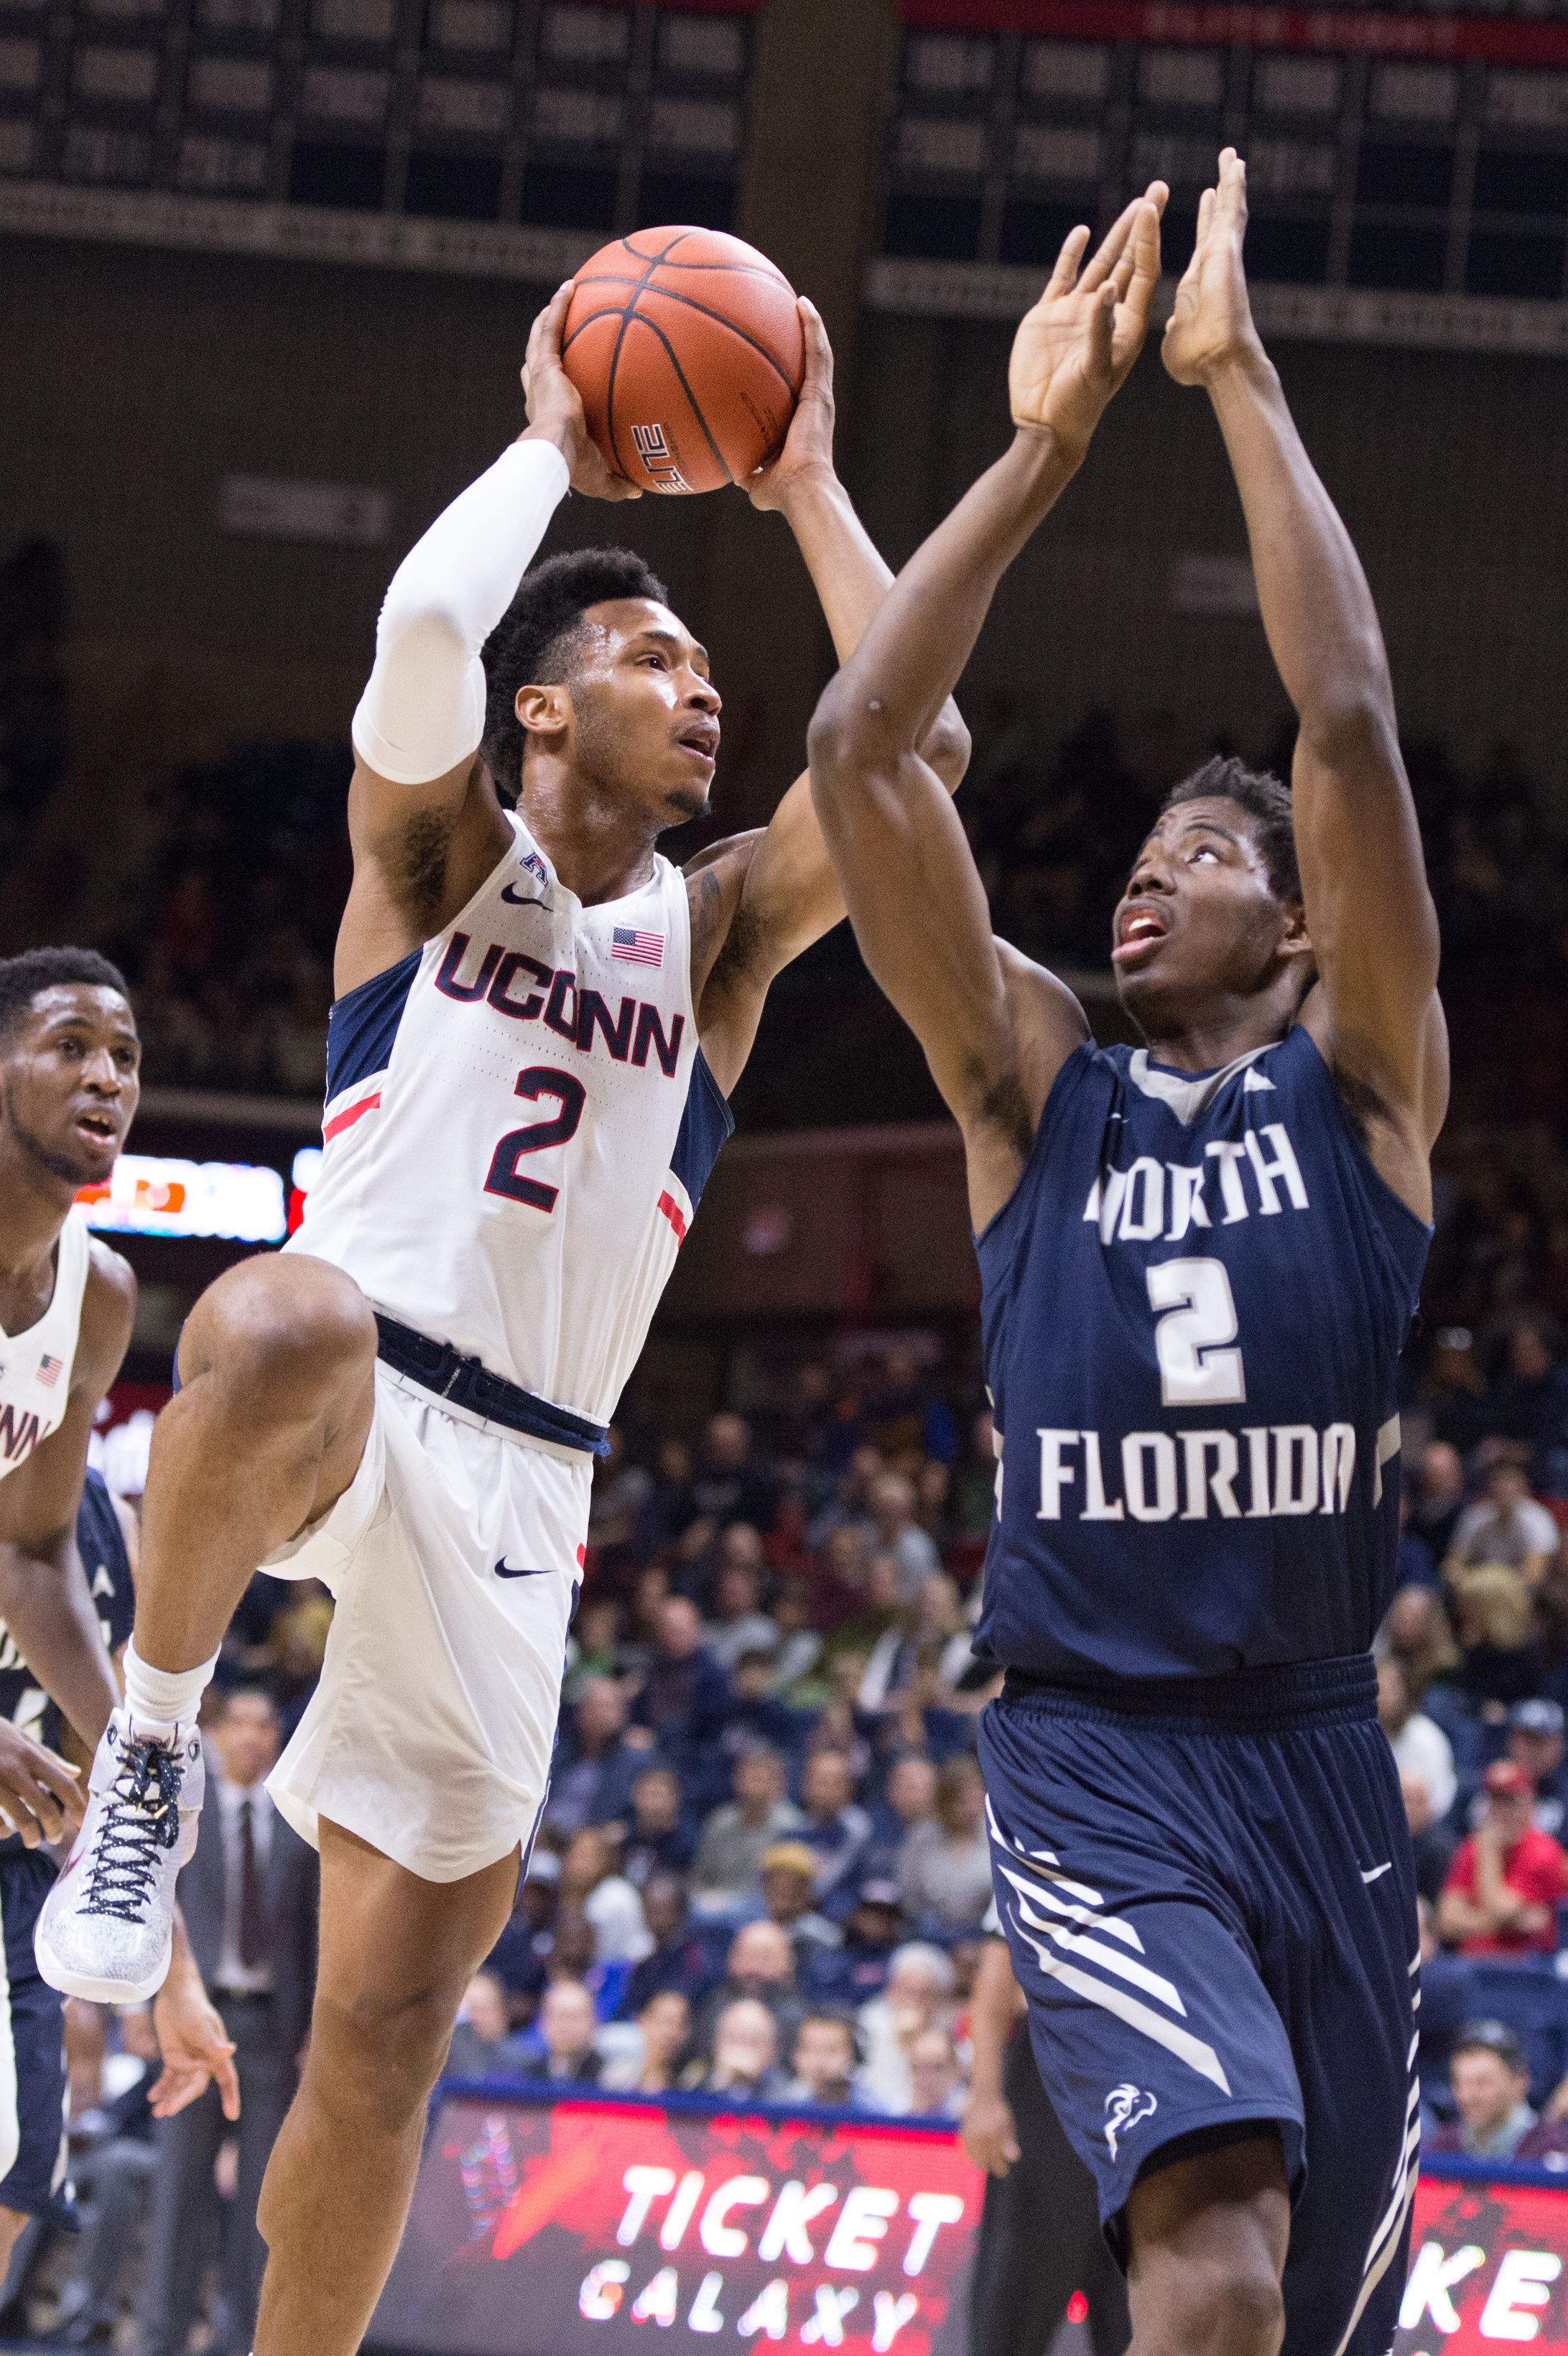 Copy of UConn Men's Basketball vs. Ospreys #3464 December 18, 2016.jpg